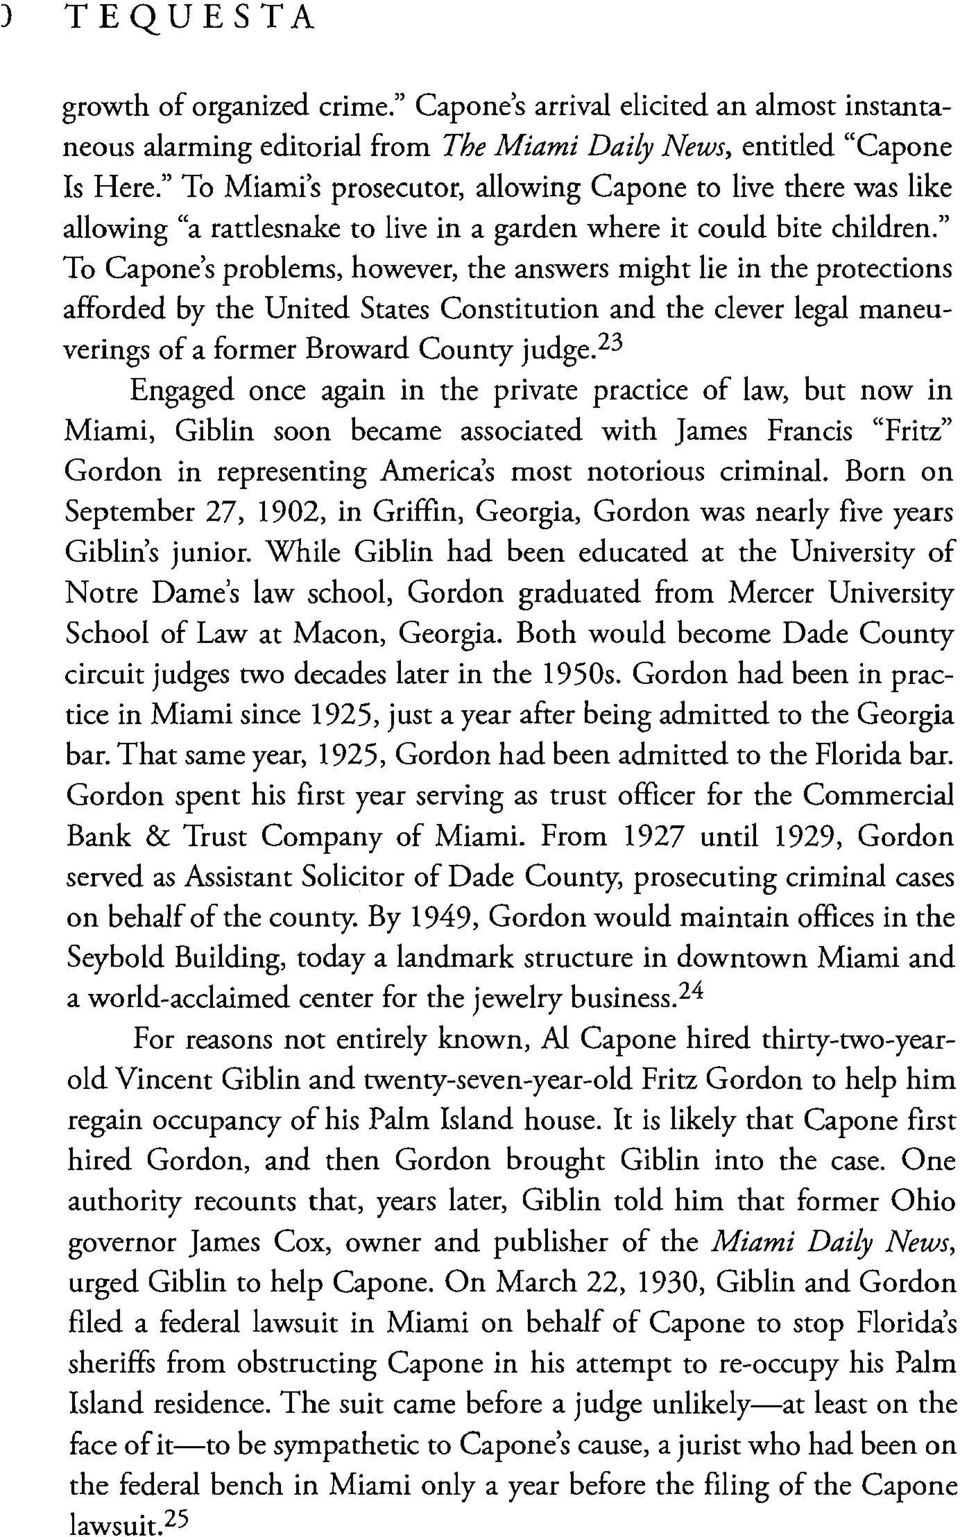 """ To Capone's problems, however, the answers might lie in the protections afforded by the United States Constitution and the clever legal maneuverings of a former Broward County judge."